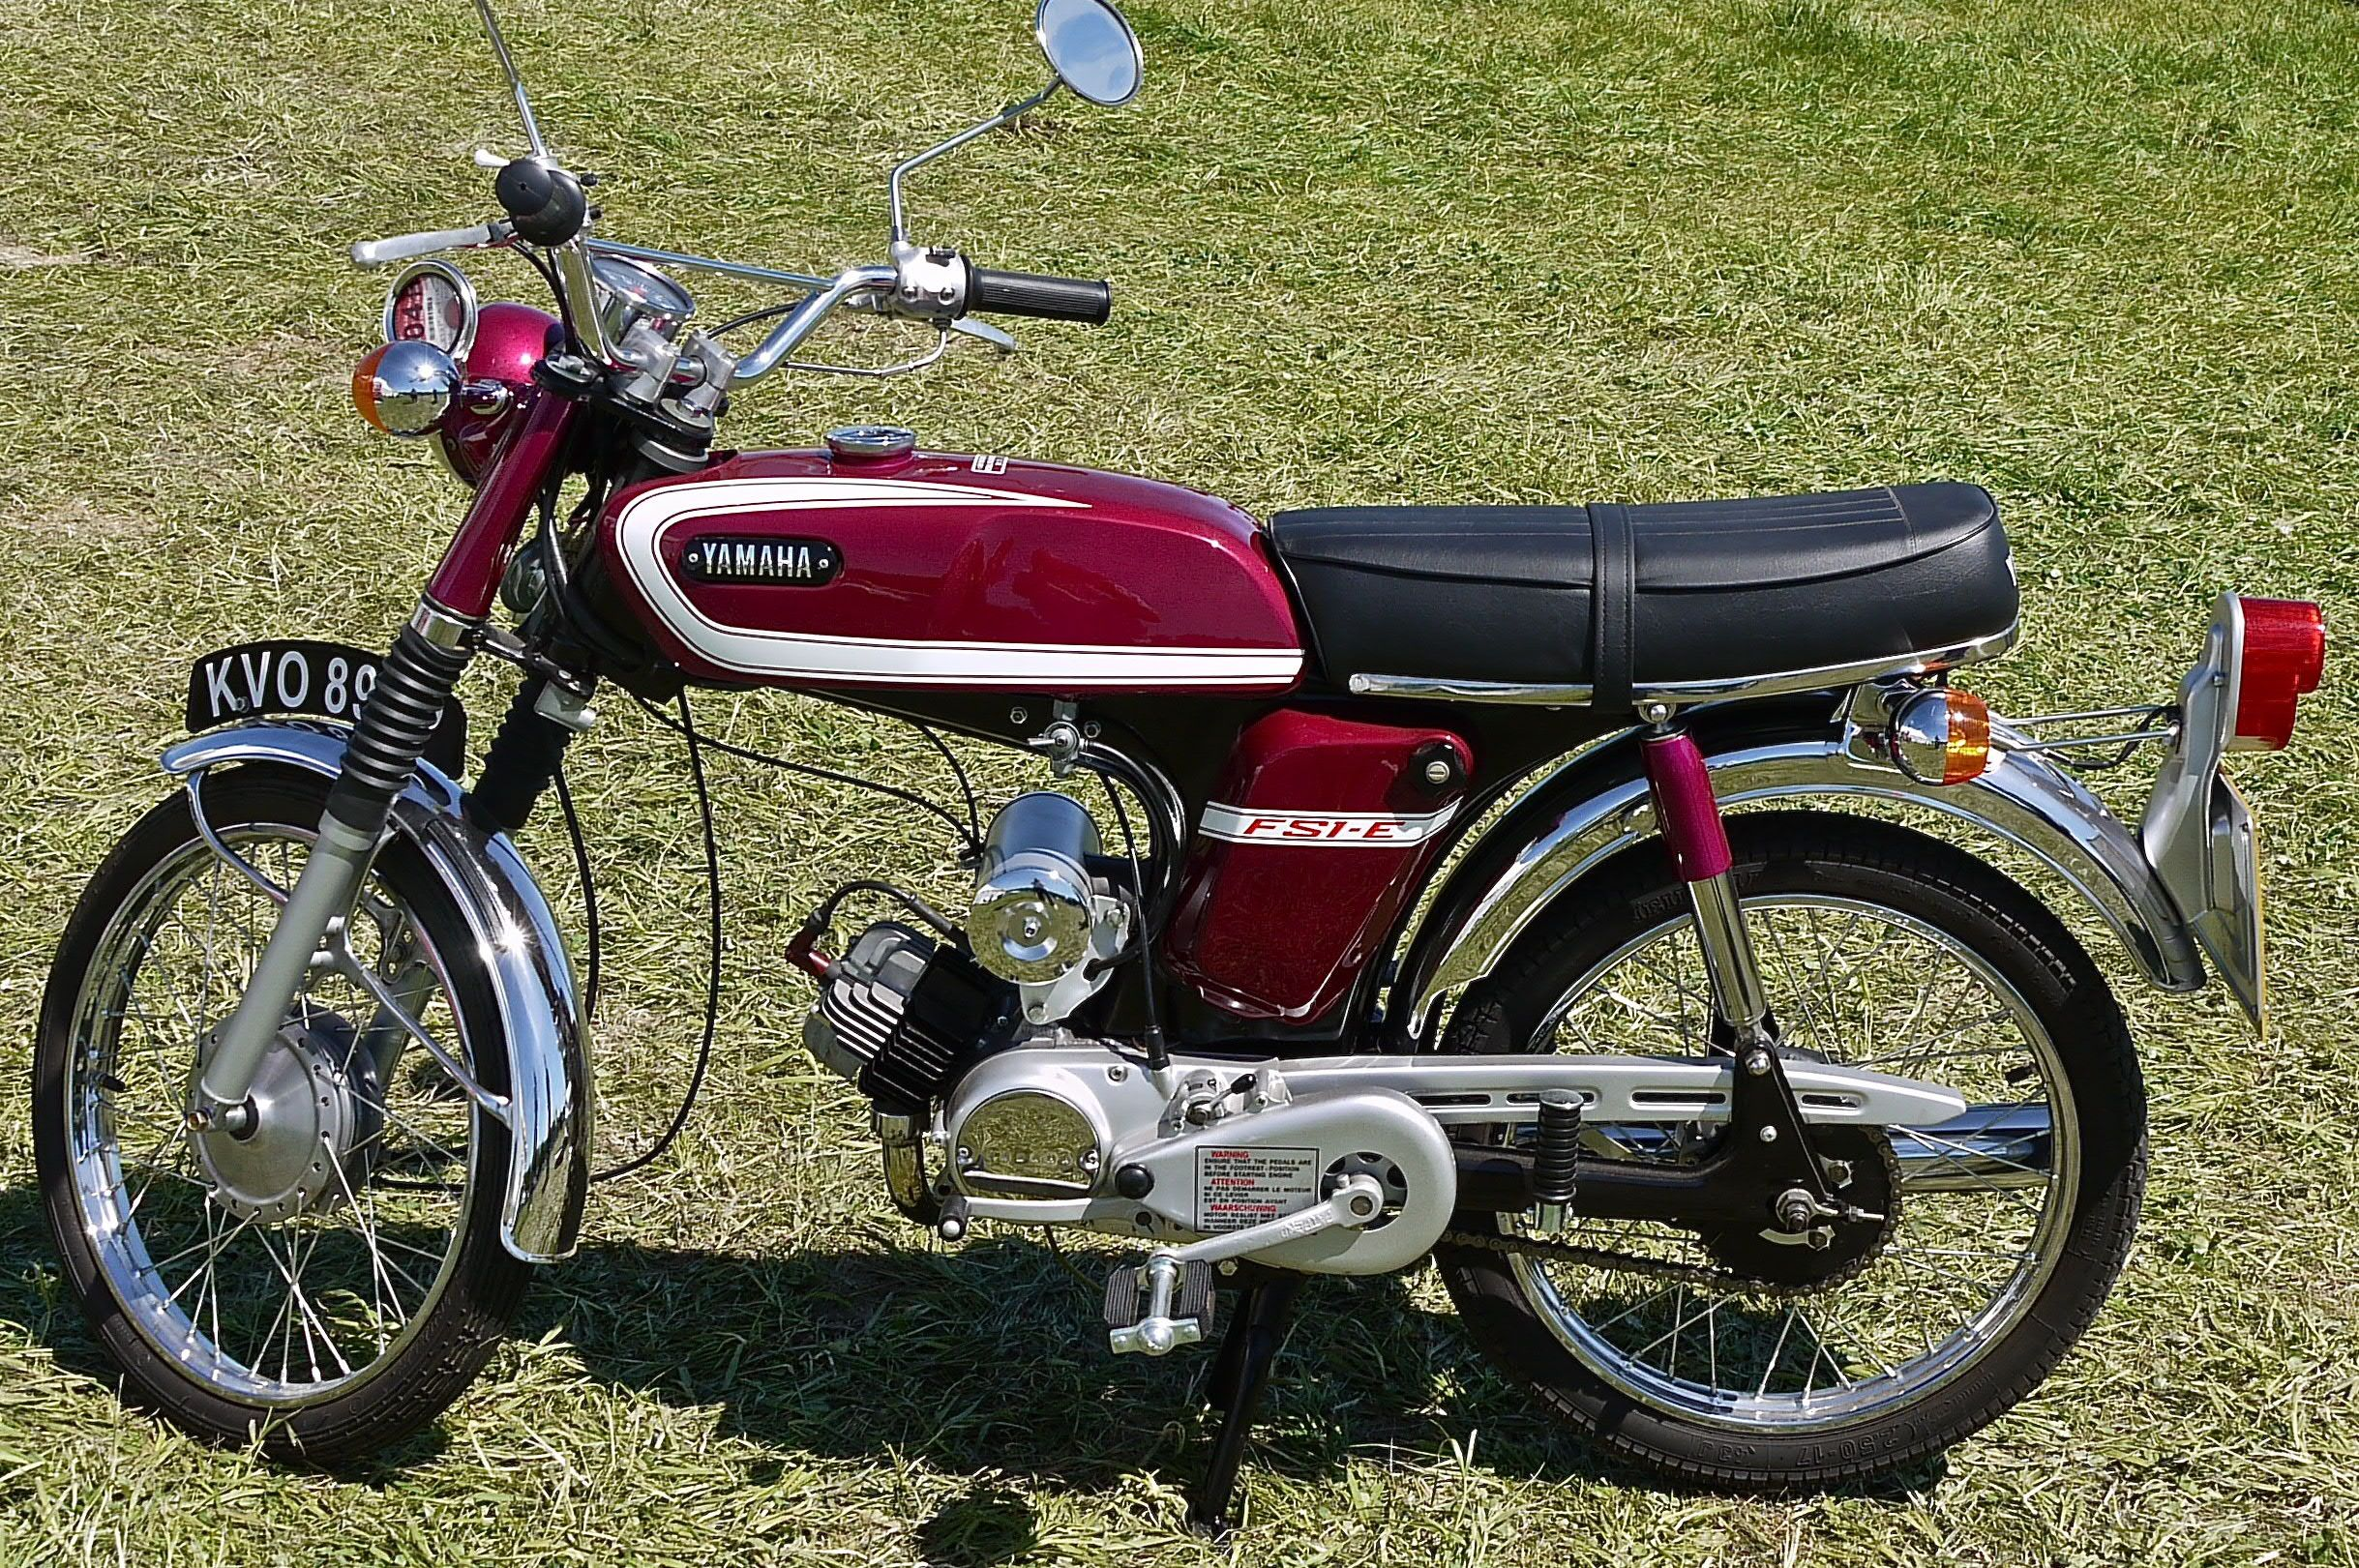 Pin by ahmed bhatti on Classic Motor bikes | Motorcycle